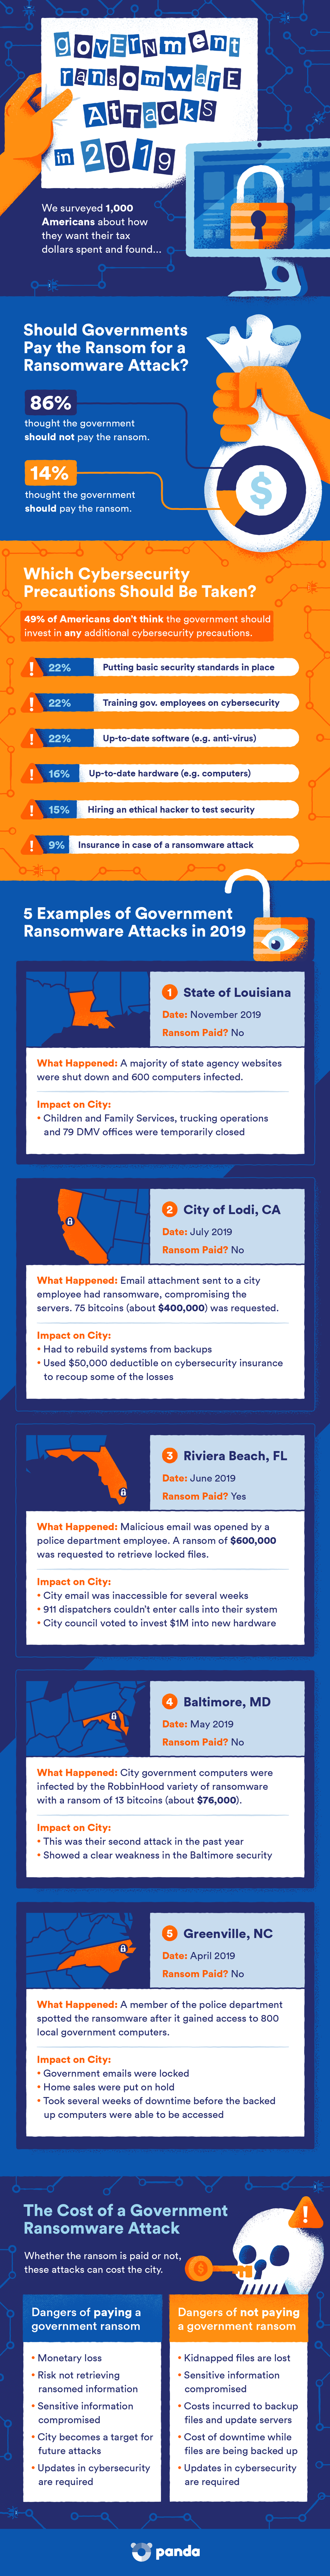 infographic of ransomware attacks on the government in 2019